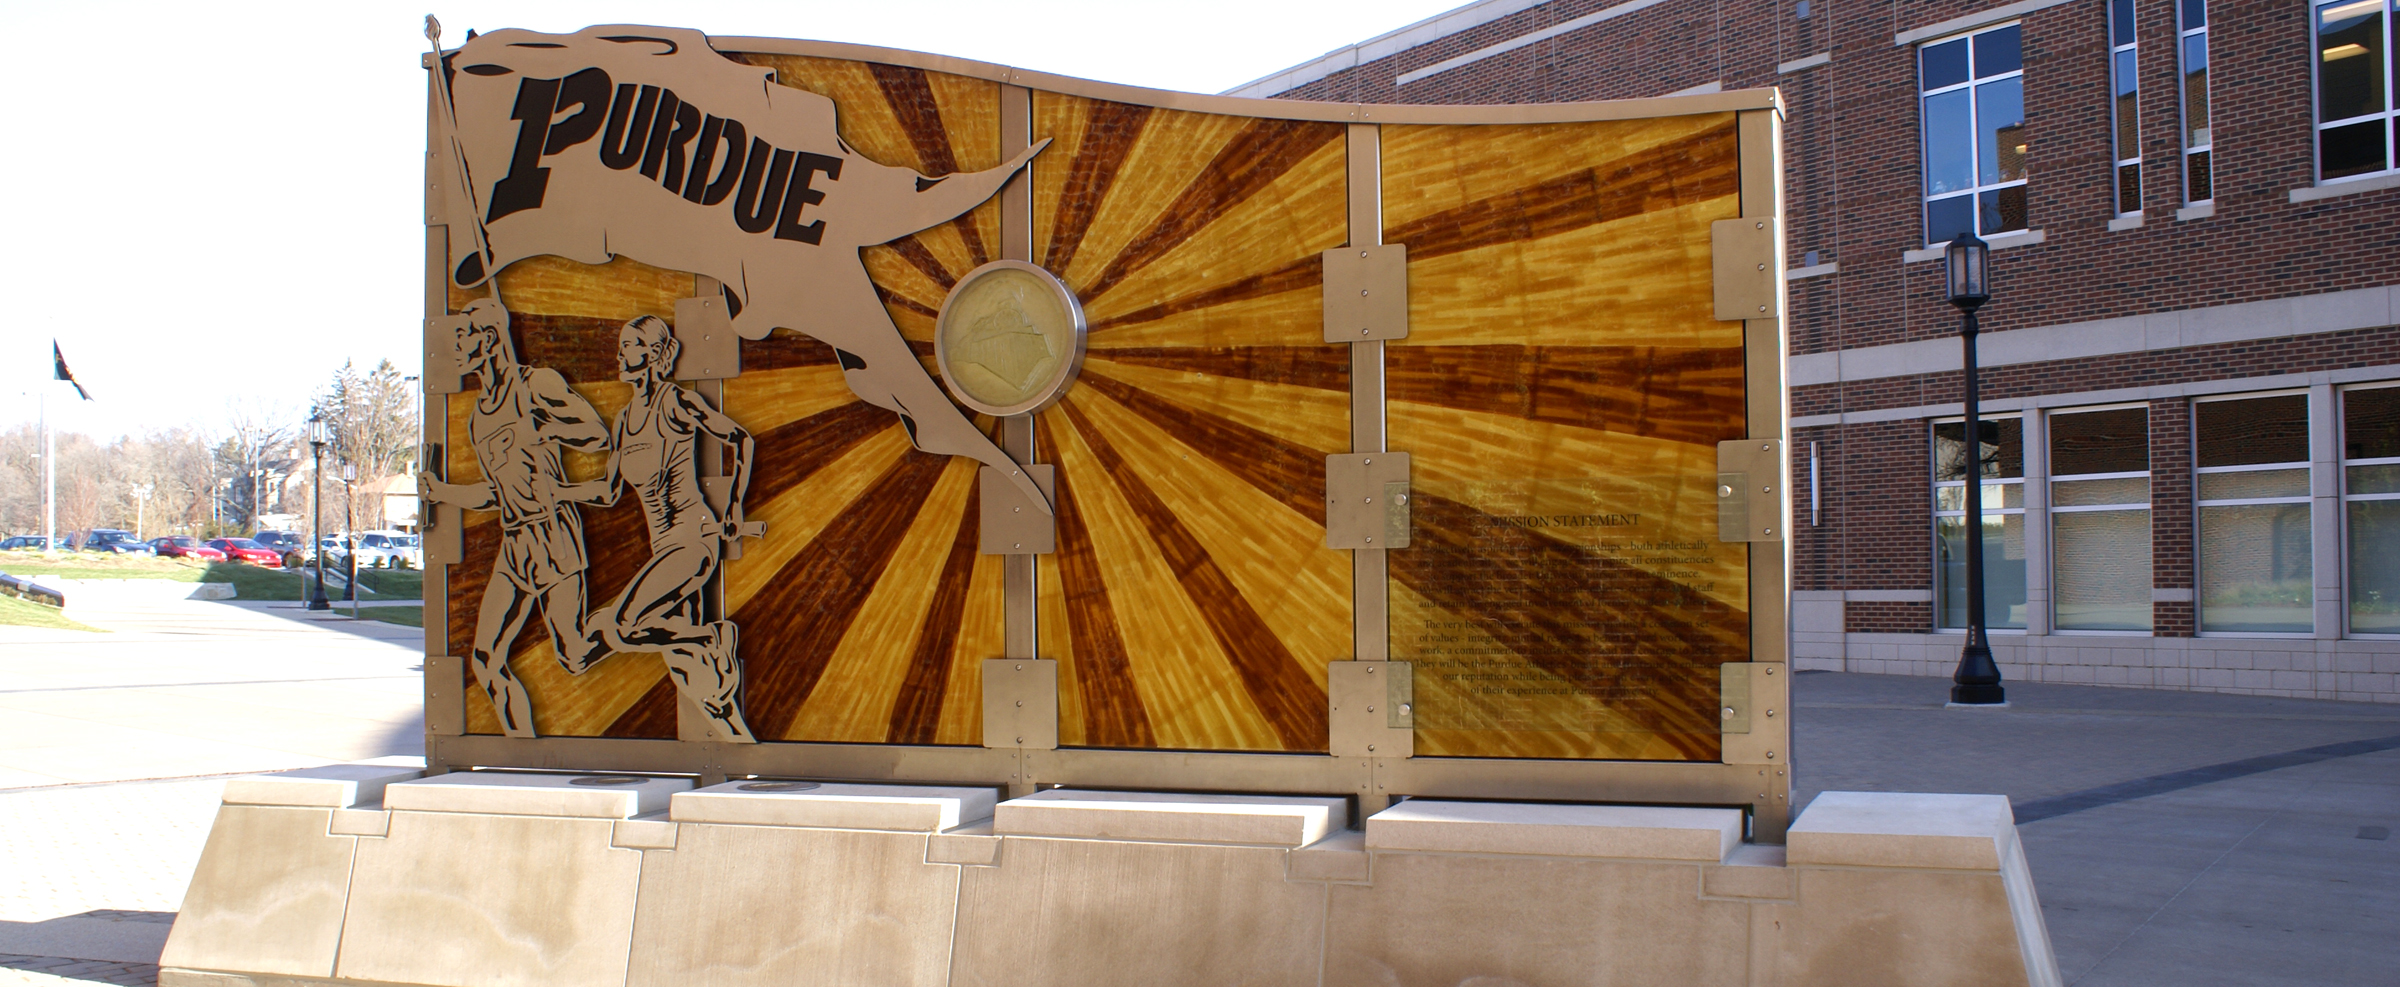 Purdue-Mission-Wall+